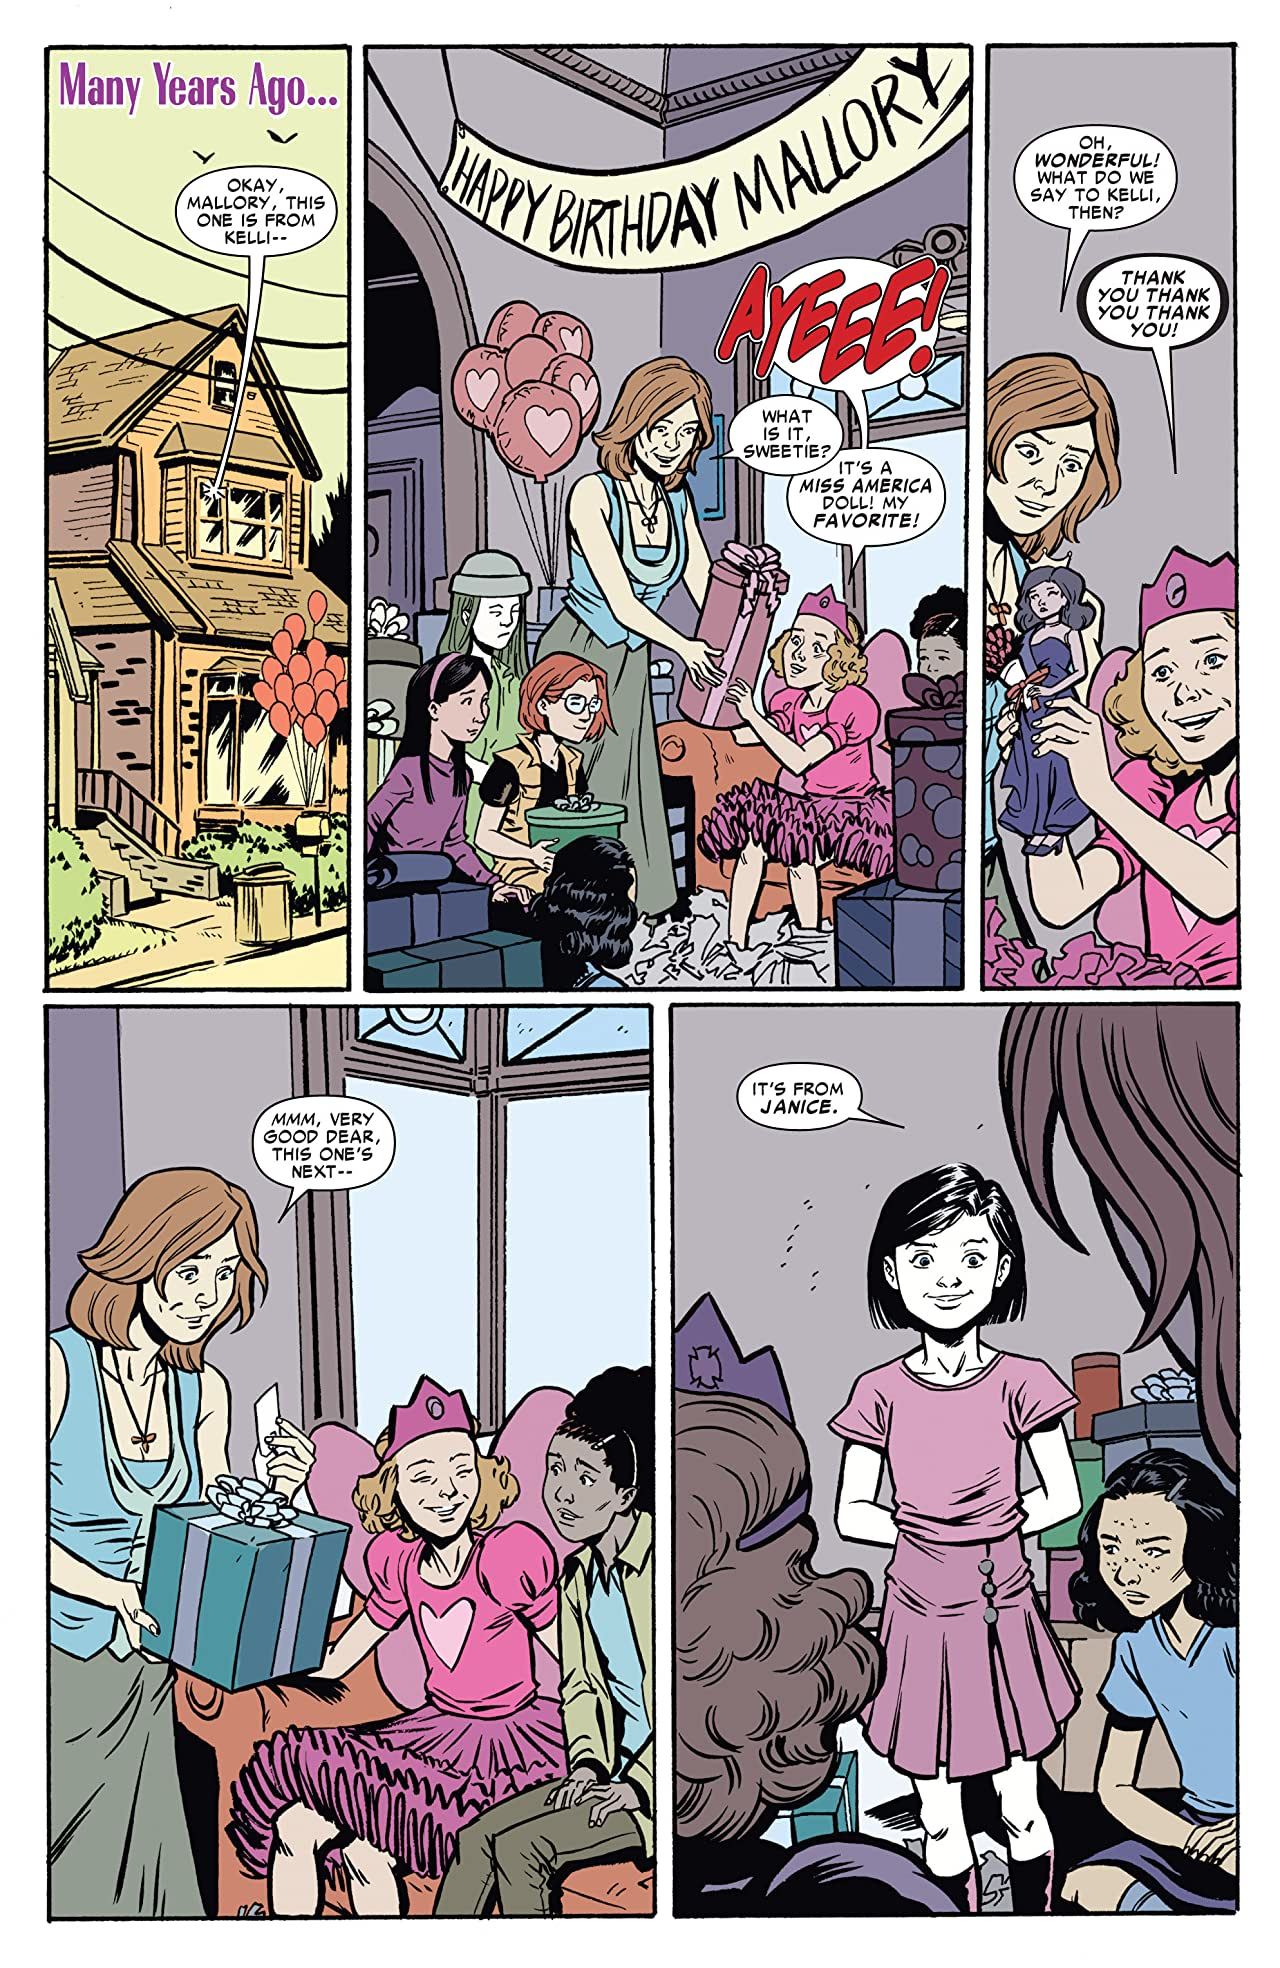 The Superior Foes of Spider-Man #7